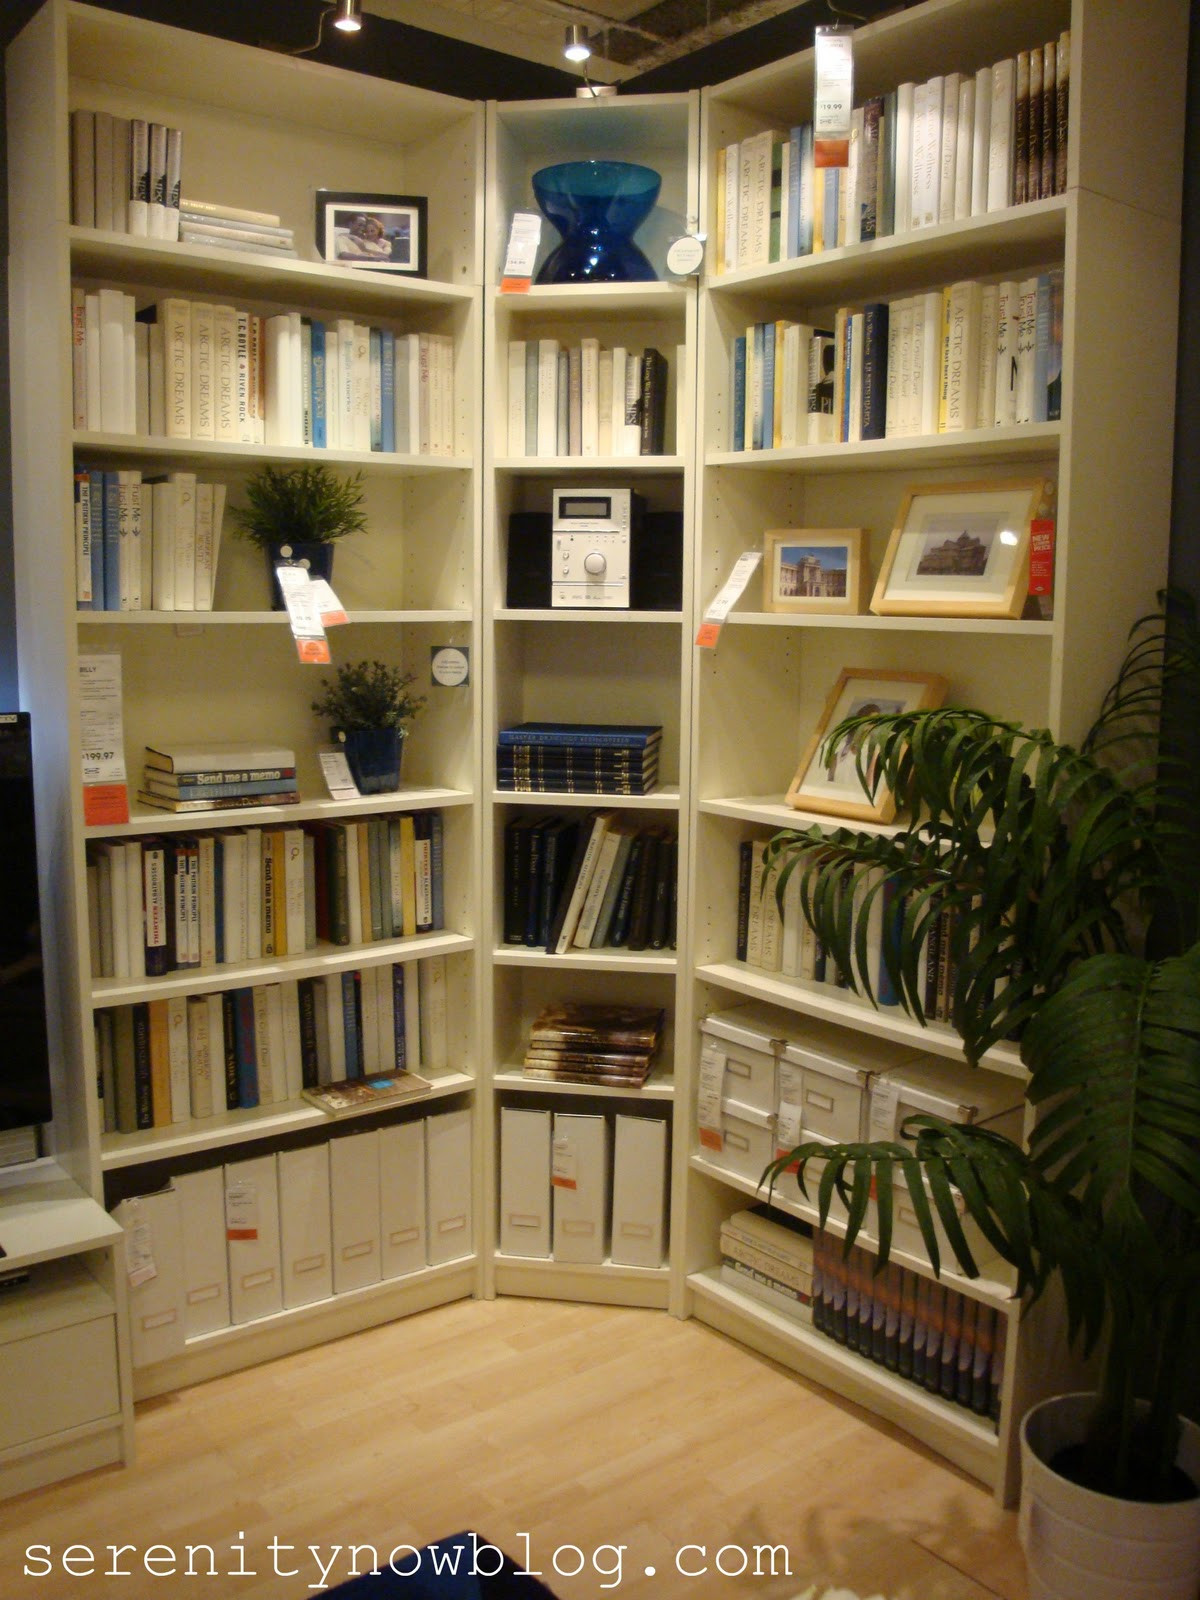 Best ideas about Ikea Storage Ideas . Save or Pin Ikea Storage House Furniture Now.